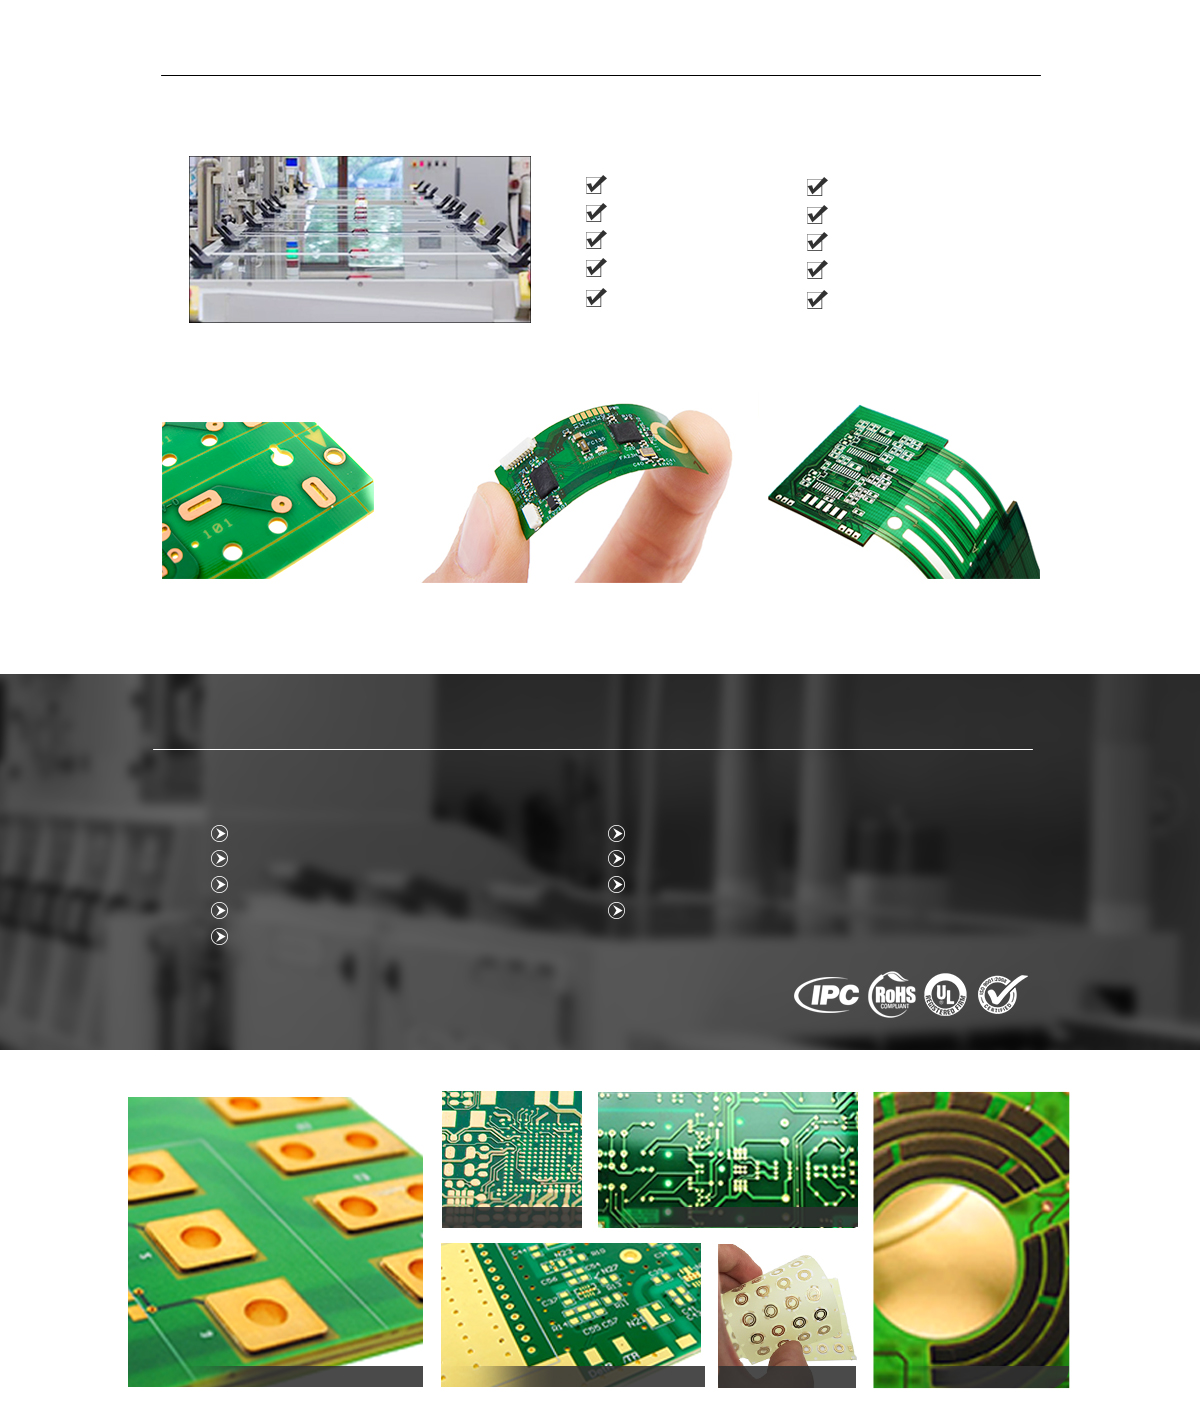 Dalian Jinseo Electronic Technology Co Ltd Pcb Pcba Wholesale China Custom Printed Circuit Board Design Manufacturing Is A Quick Turn Around Manufacturer Of Boards